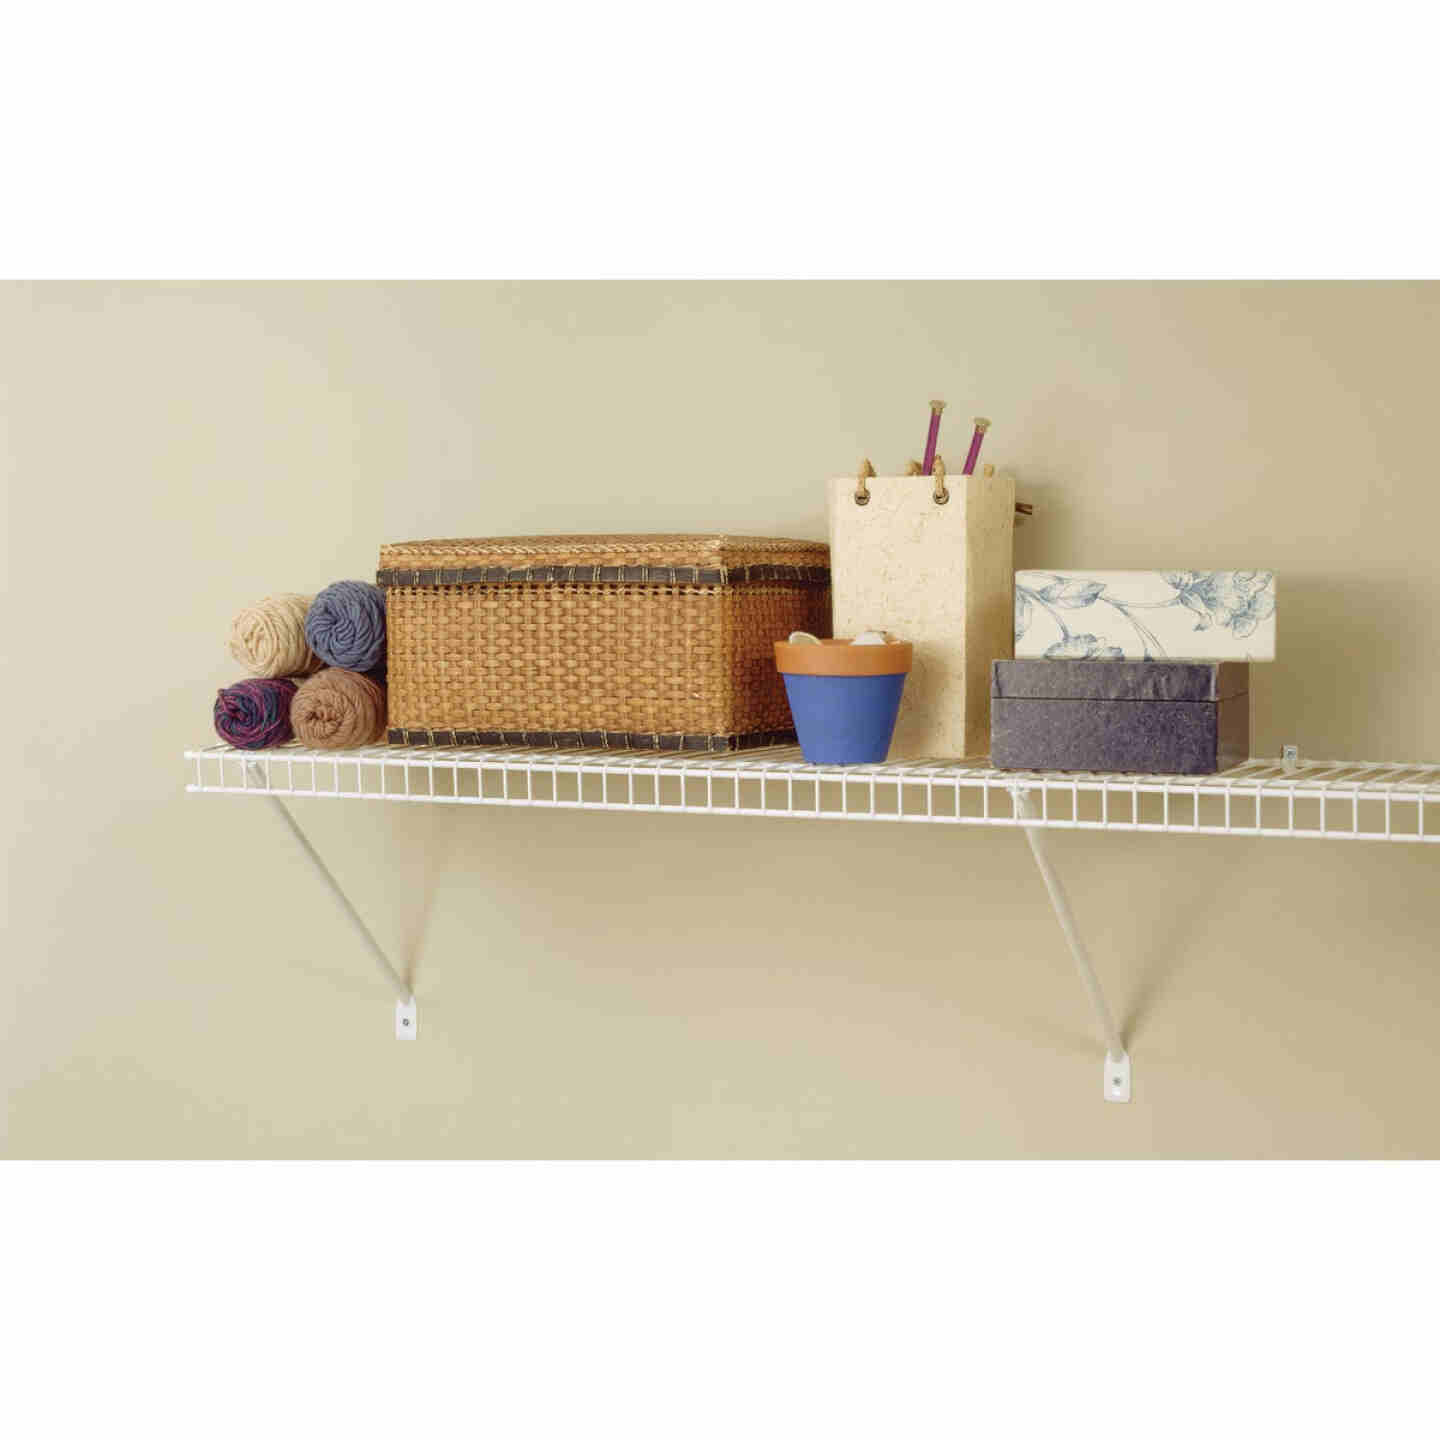 ClosetMaid 6 Ft. W. x 12 In. D Ventilated Shelf Kit, White Image 2